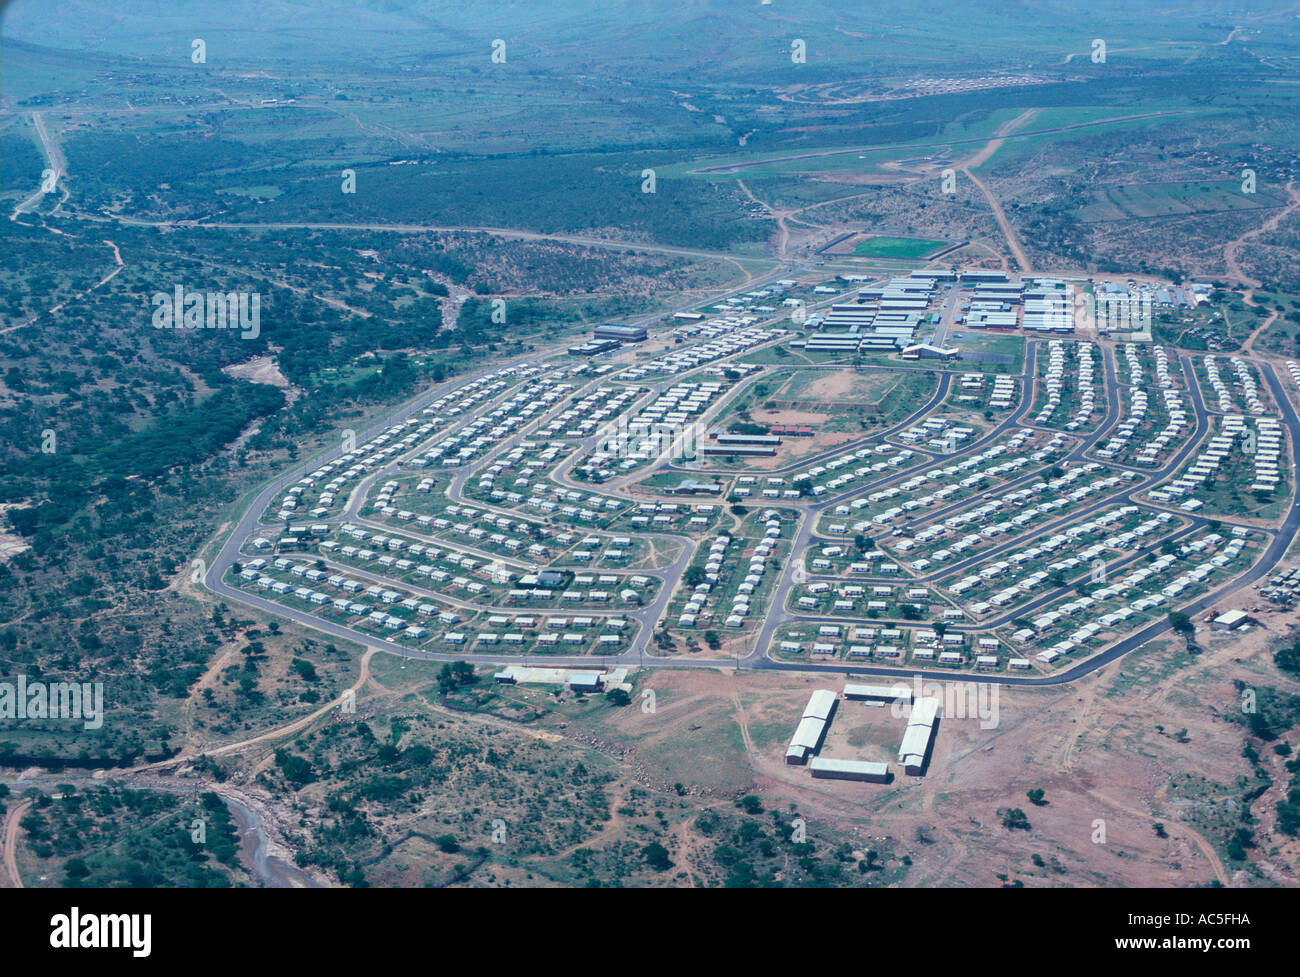 SOUTH AFRICA S NEW KWA ZULU CAPITAL ULUNDI SITE OF THE LAST - Capital of south africa